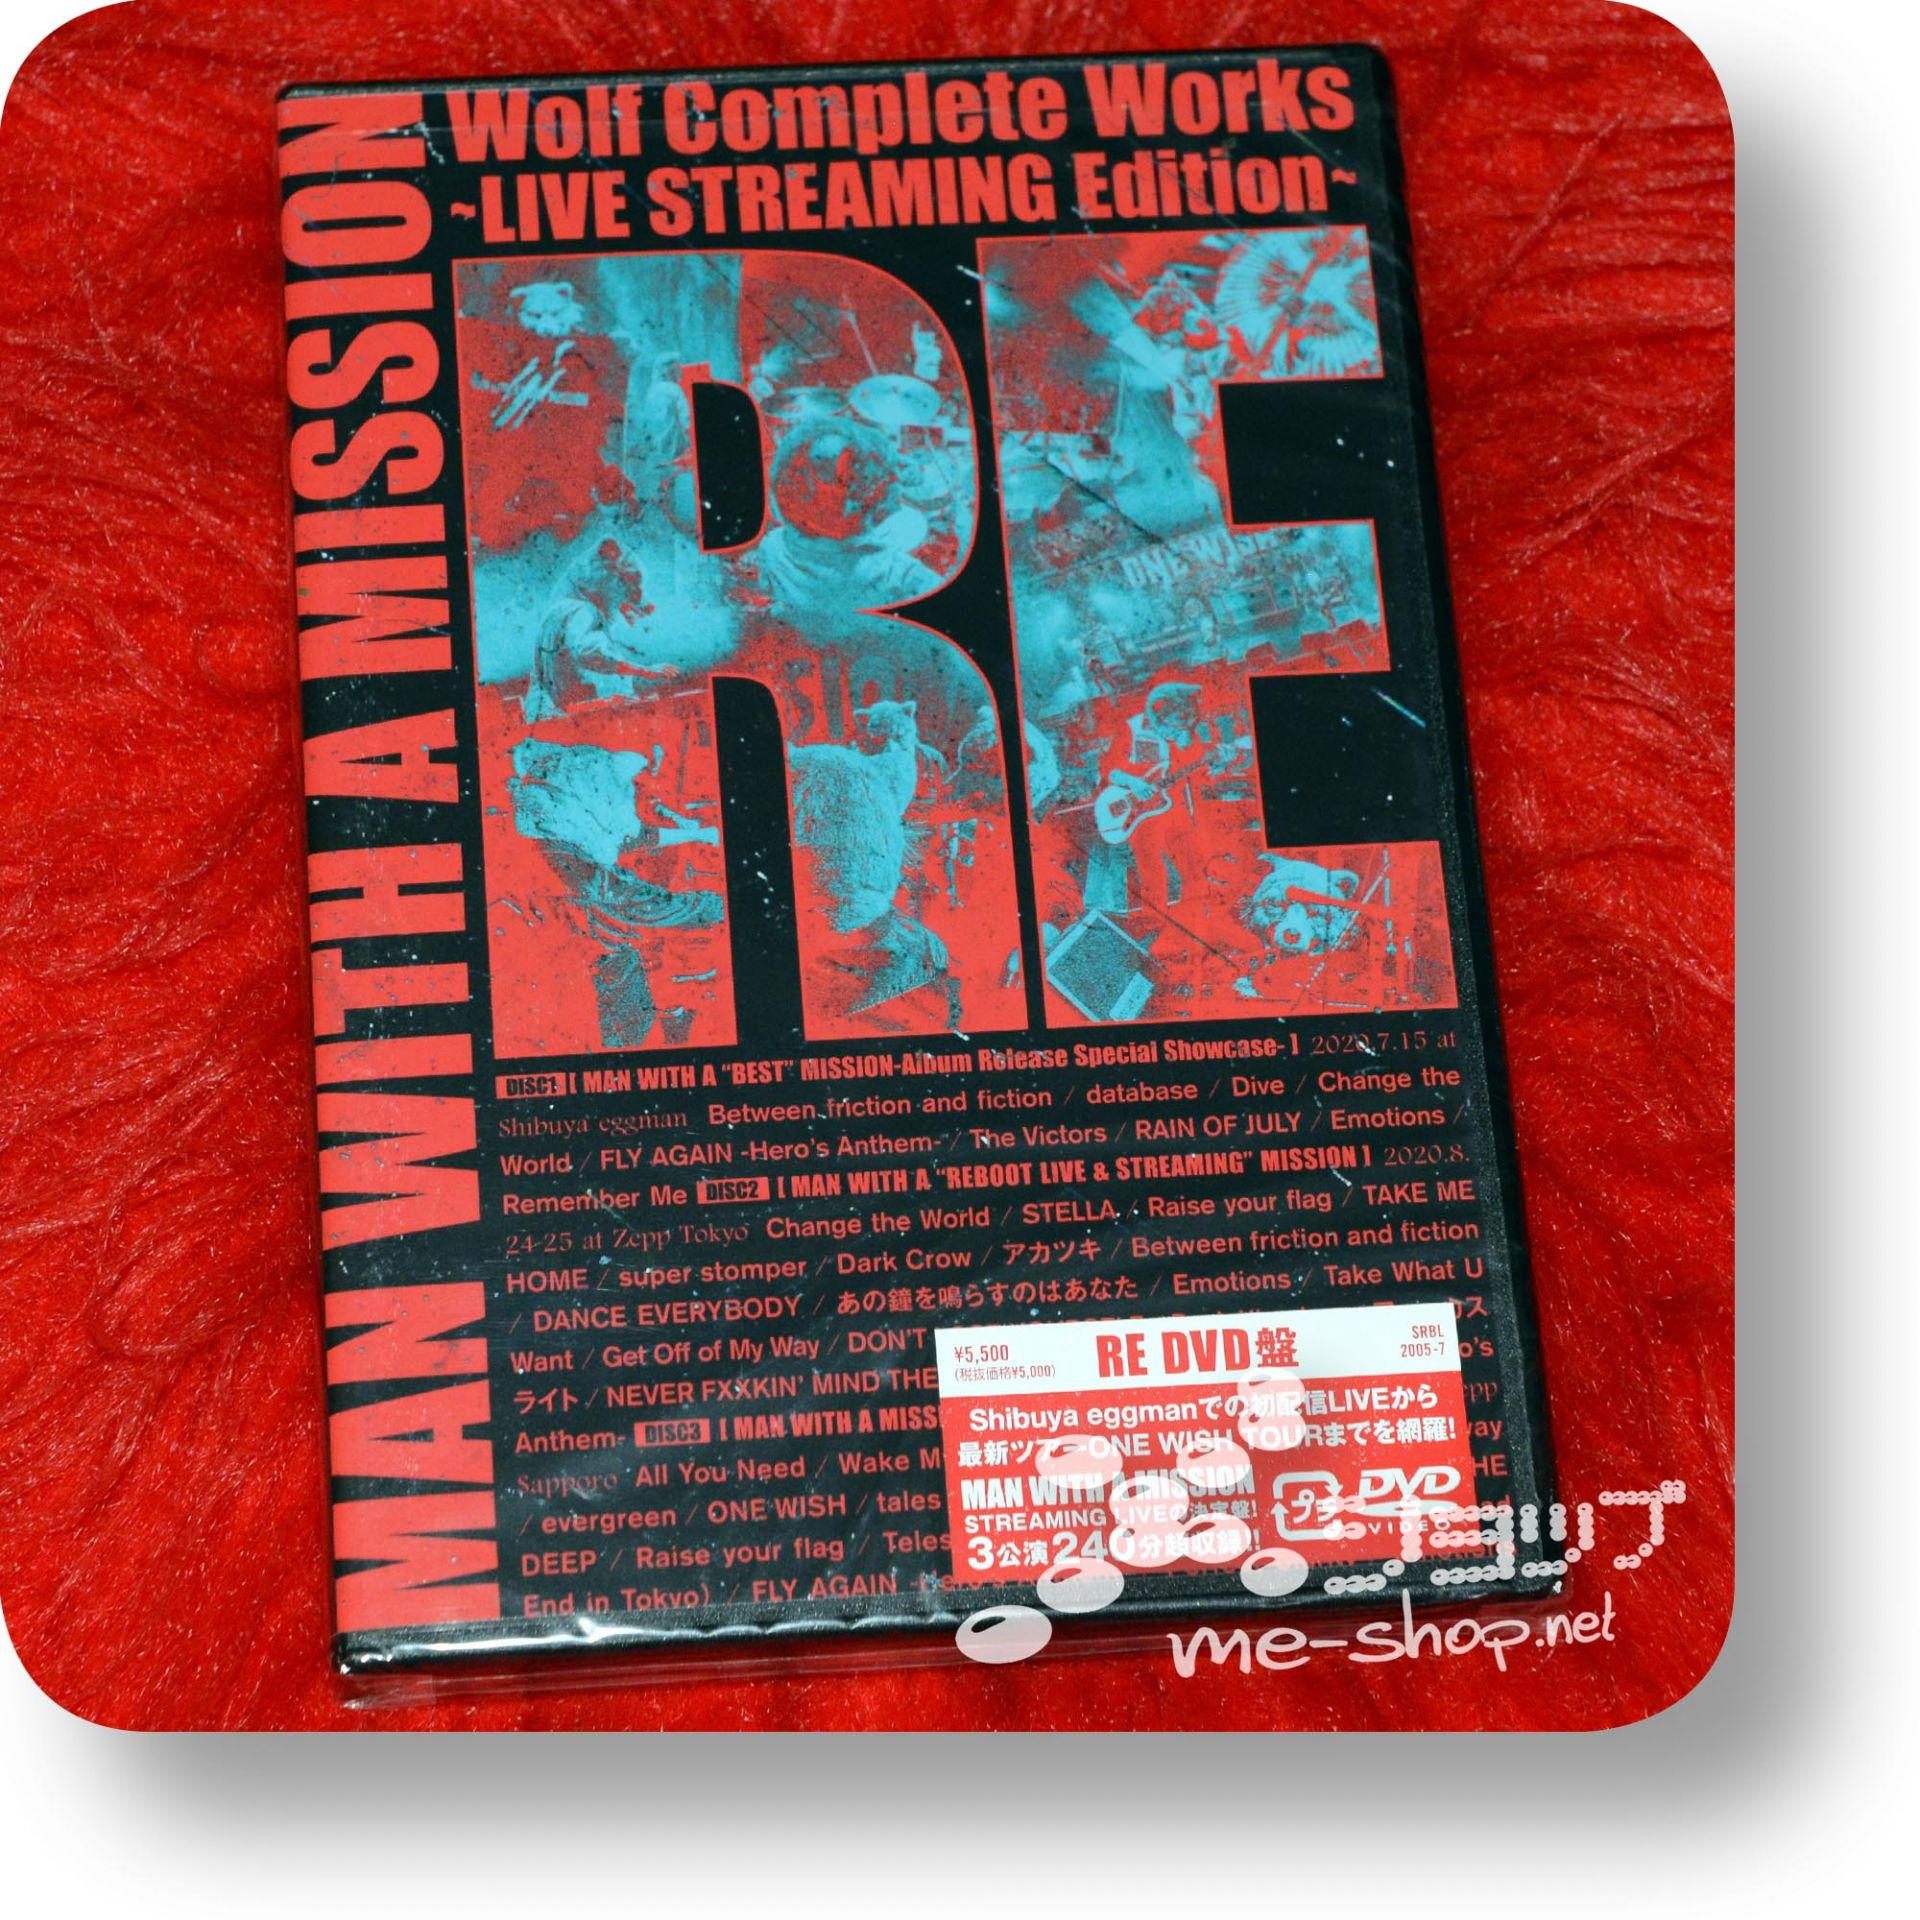 man with a mission wolf complete works re dvd